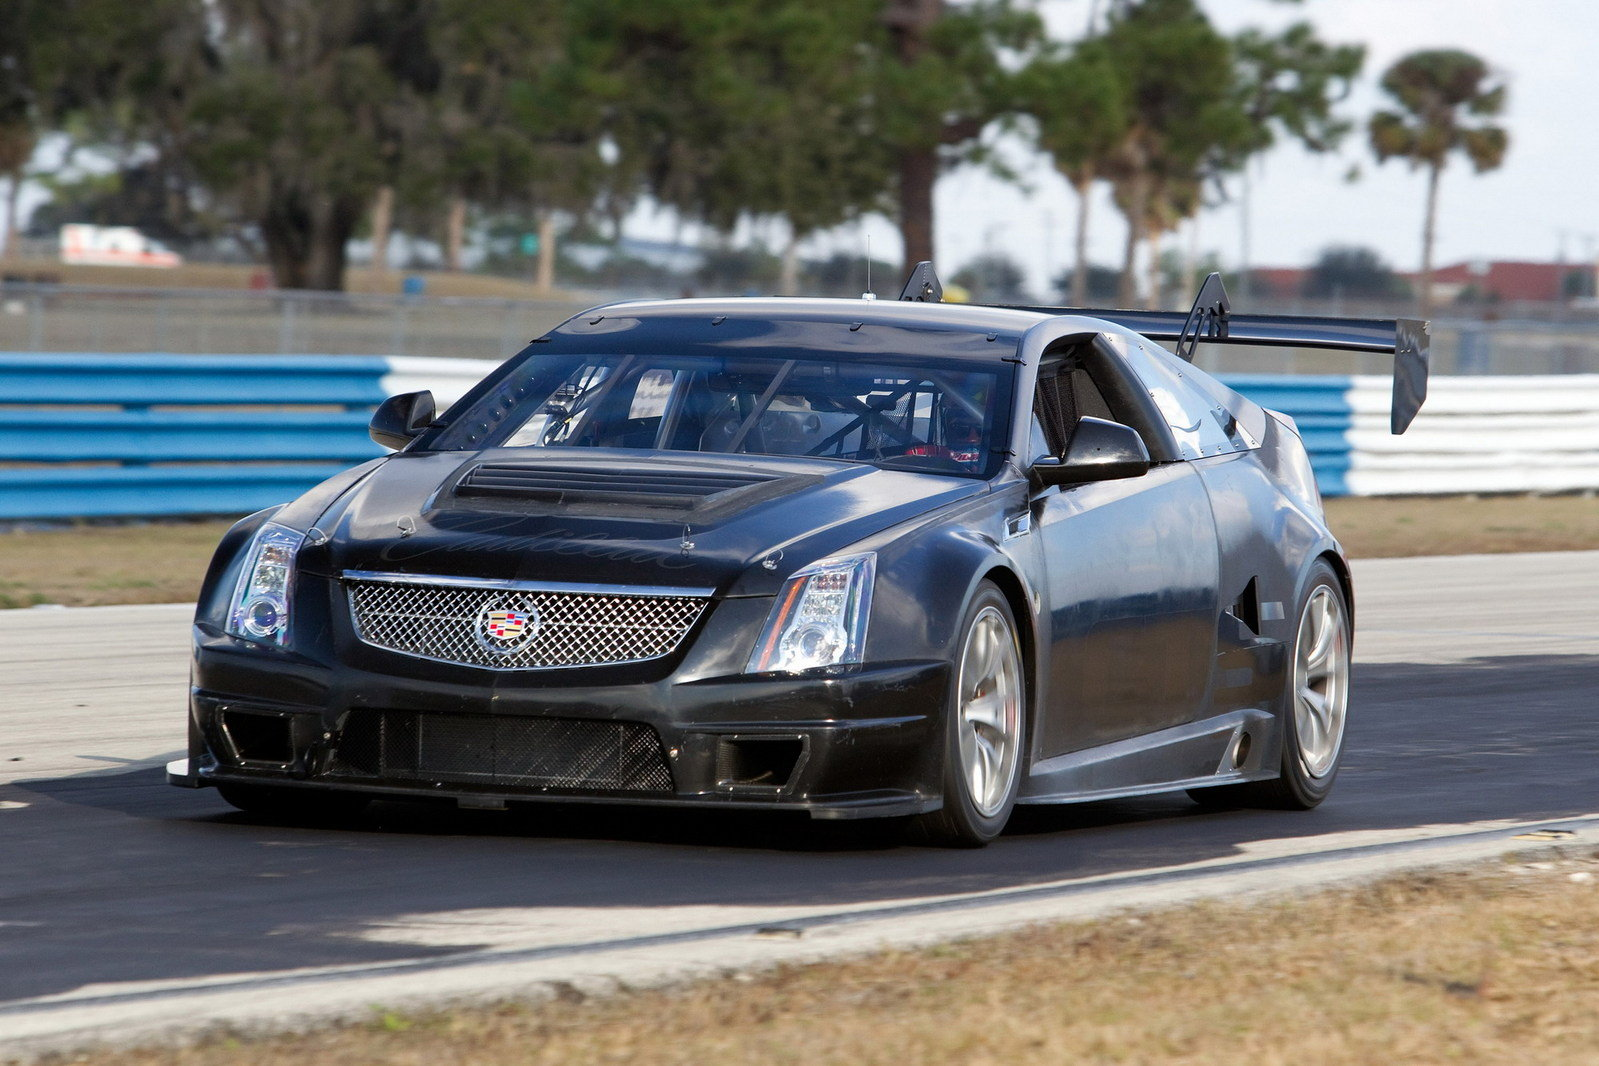 2011 cadillac cts v coupe race car picture 389871 car. Black Bedroom Furniture Sets. Home Design Ideas